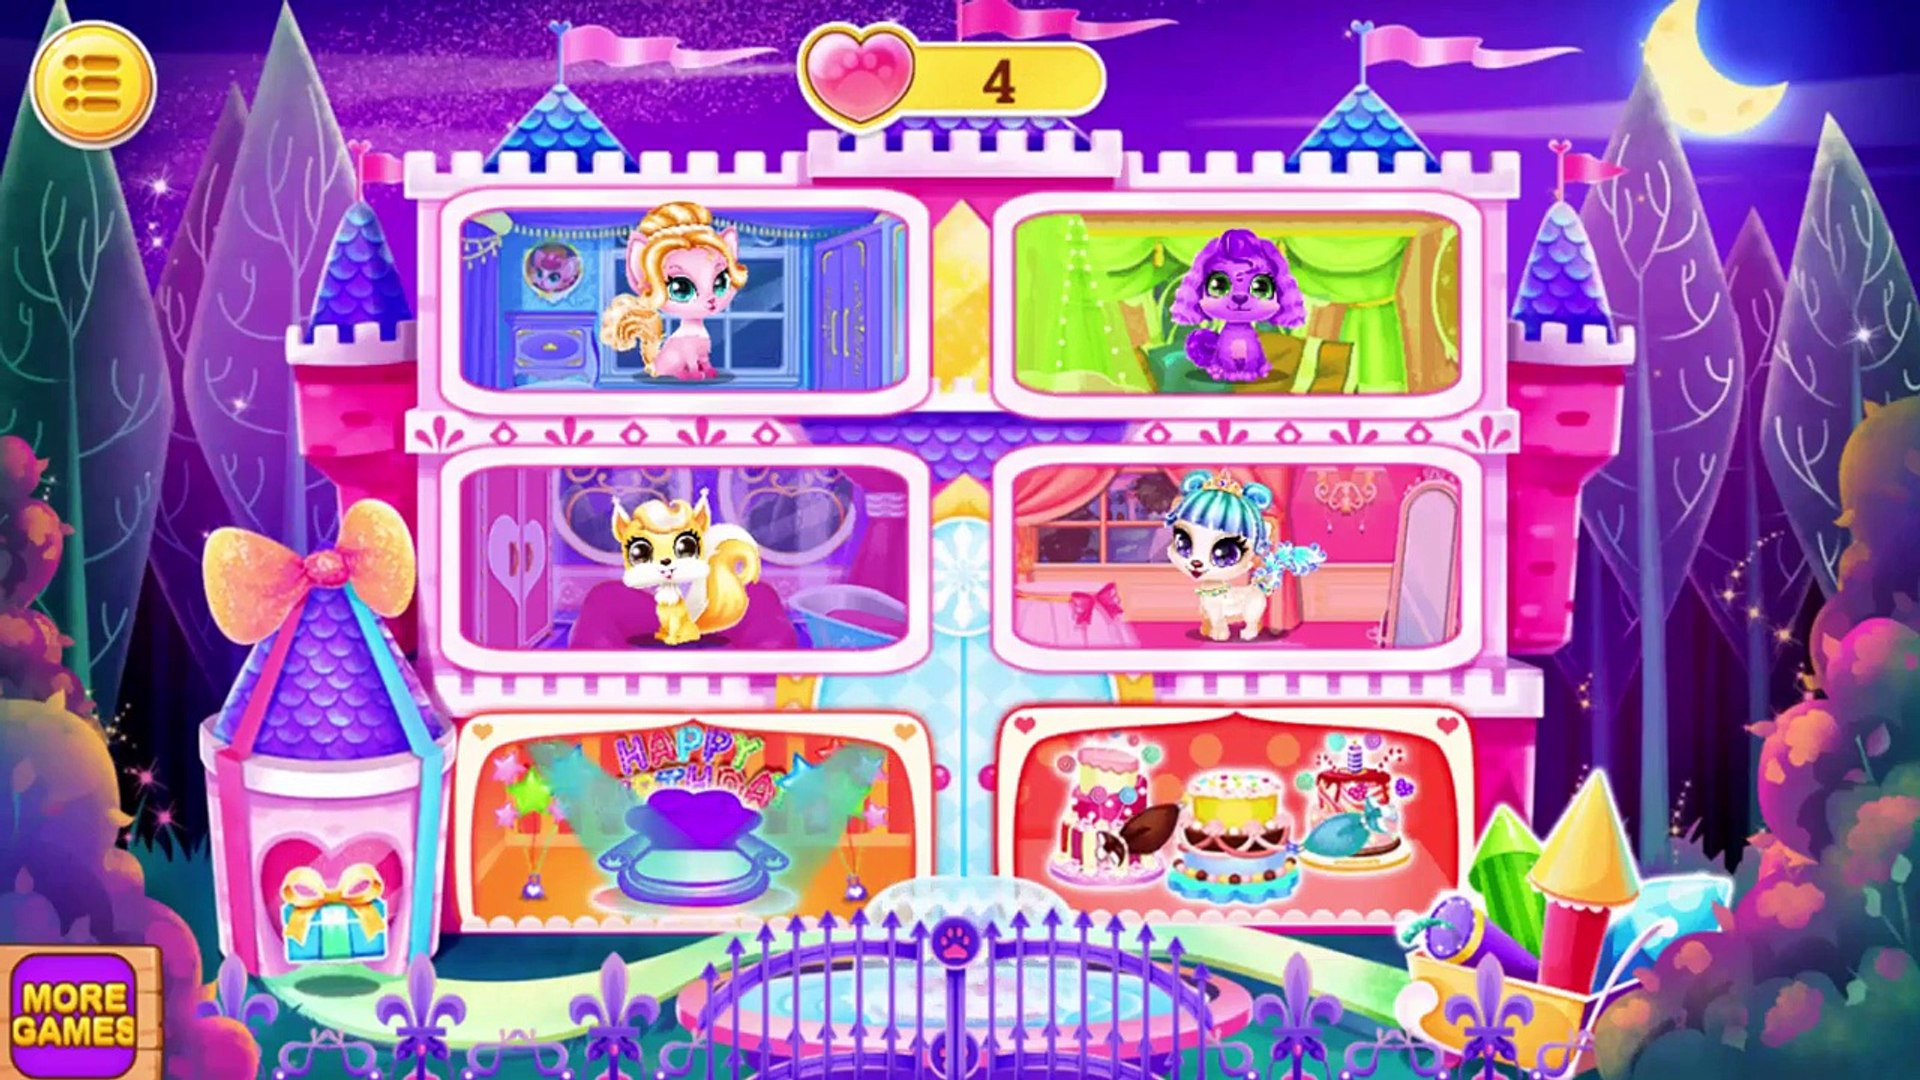 Fun Pet Baby Care - Pet Salon - Princess Pet Royal Birthday Party _ Bath, Dress Up Kids Play Game